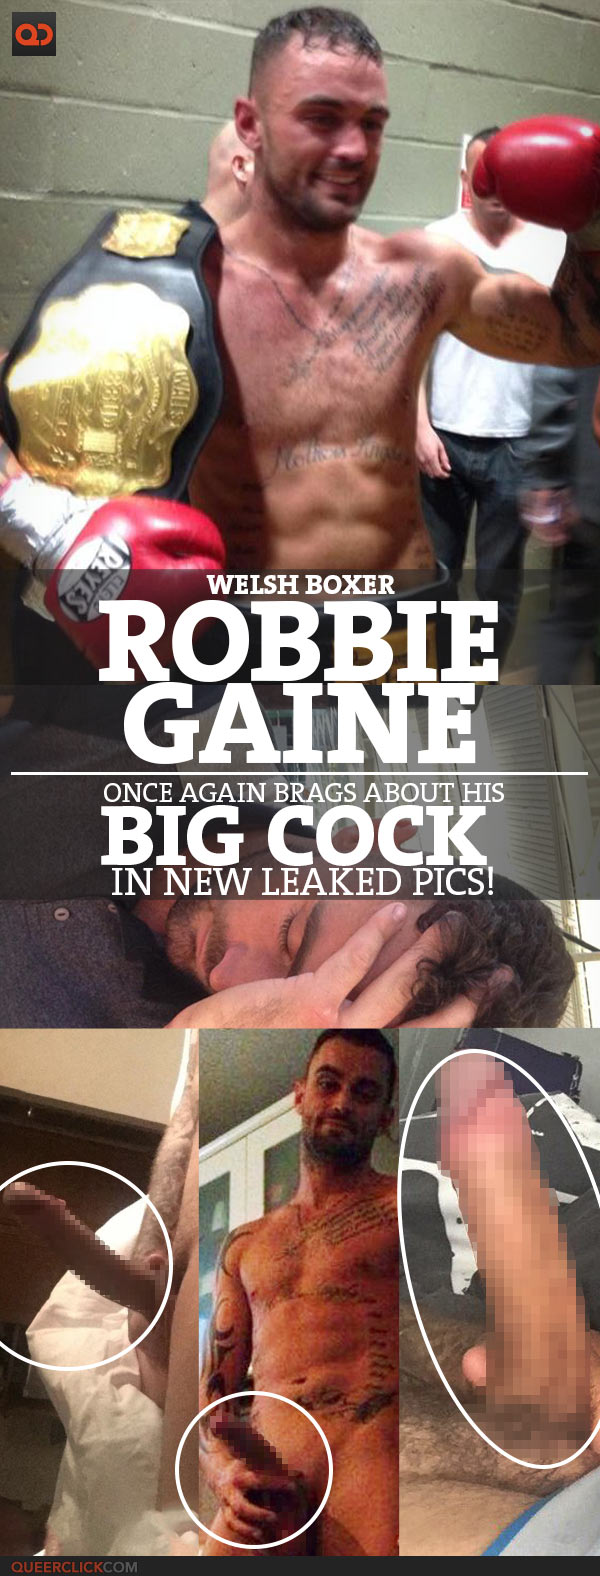 Robbie Gaine, Welsh Boxer, Once Again Brags About His Big Cock In New Leaked Pics!